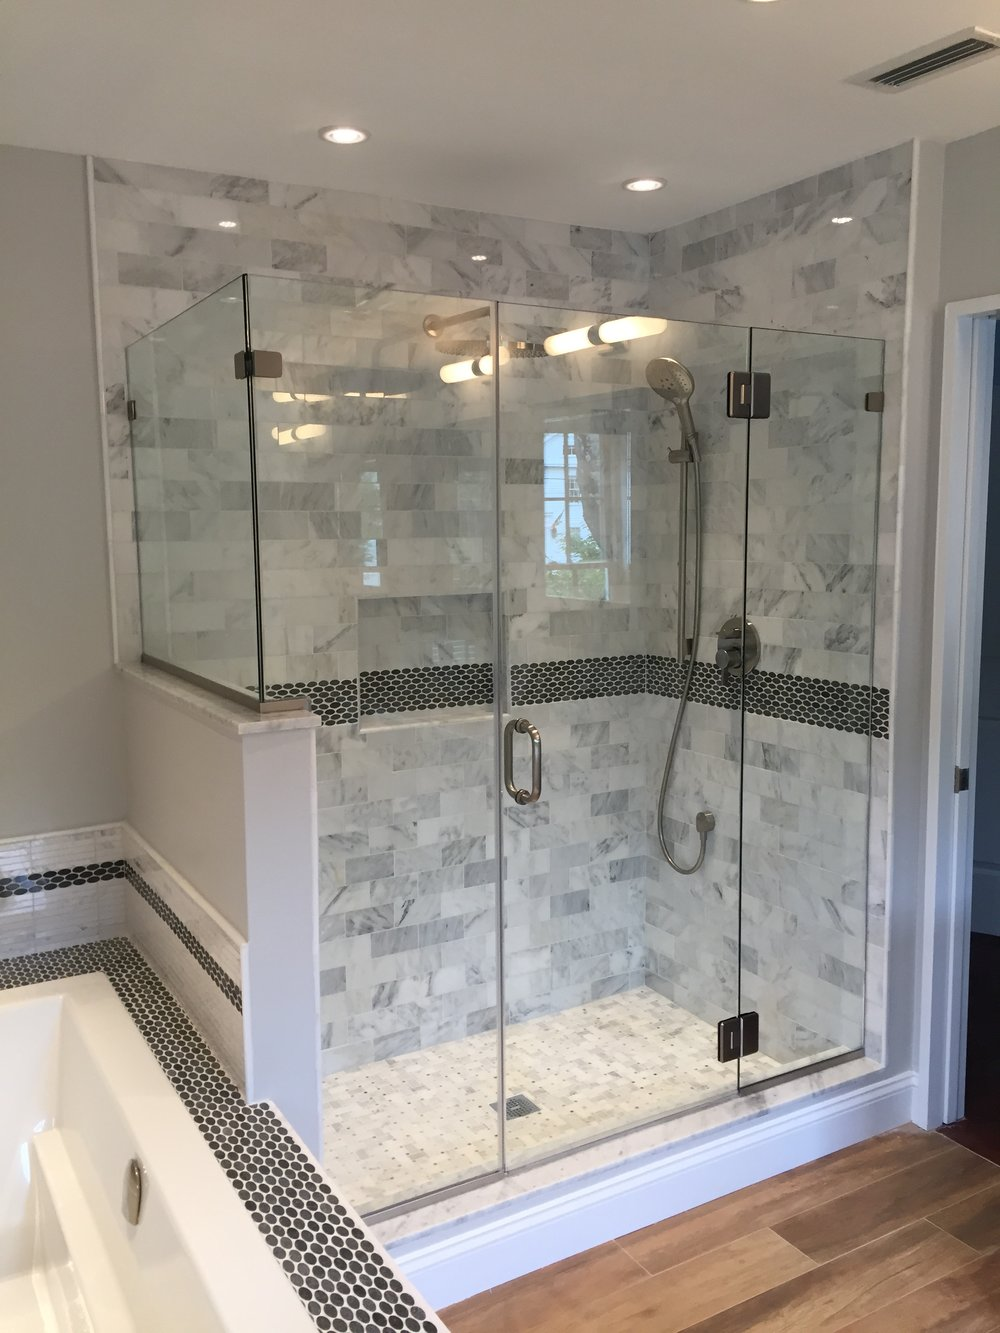 Bathroom Remodel Essex - Shaw Remodeling Shower.JPG